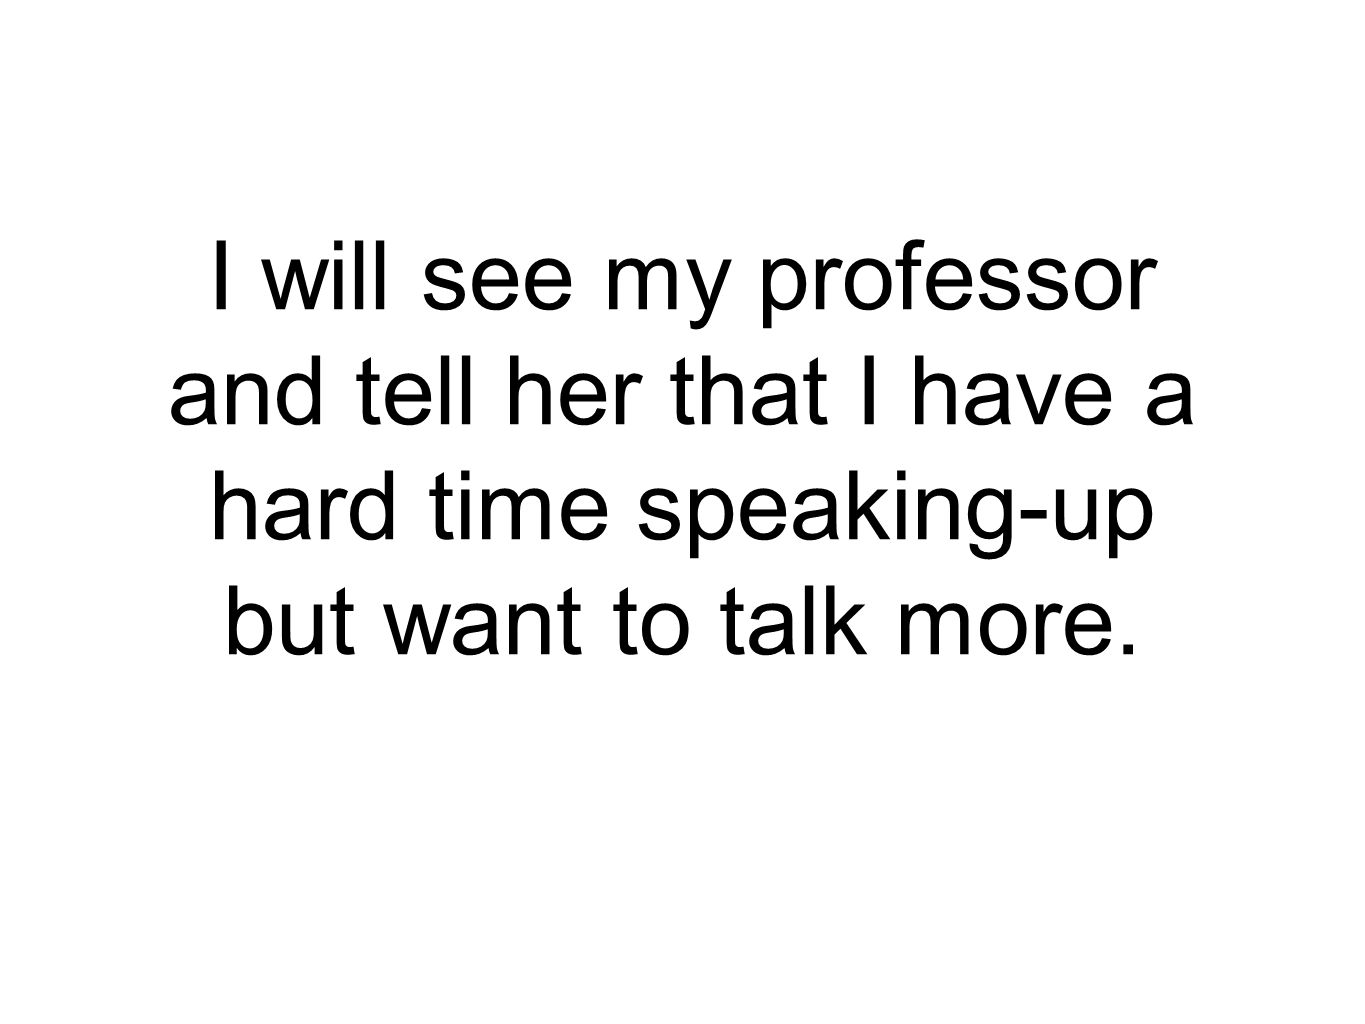 I will see my professor and tell her that I have a hard time speaking-up but want to talk more.